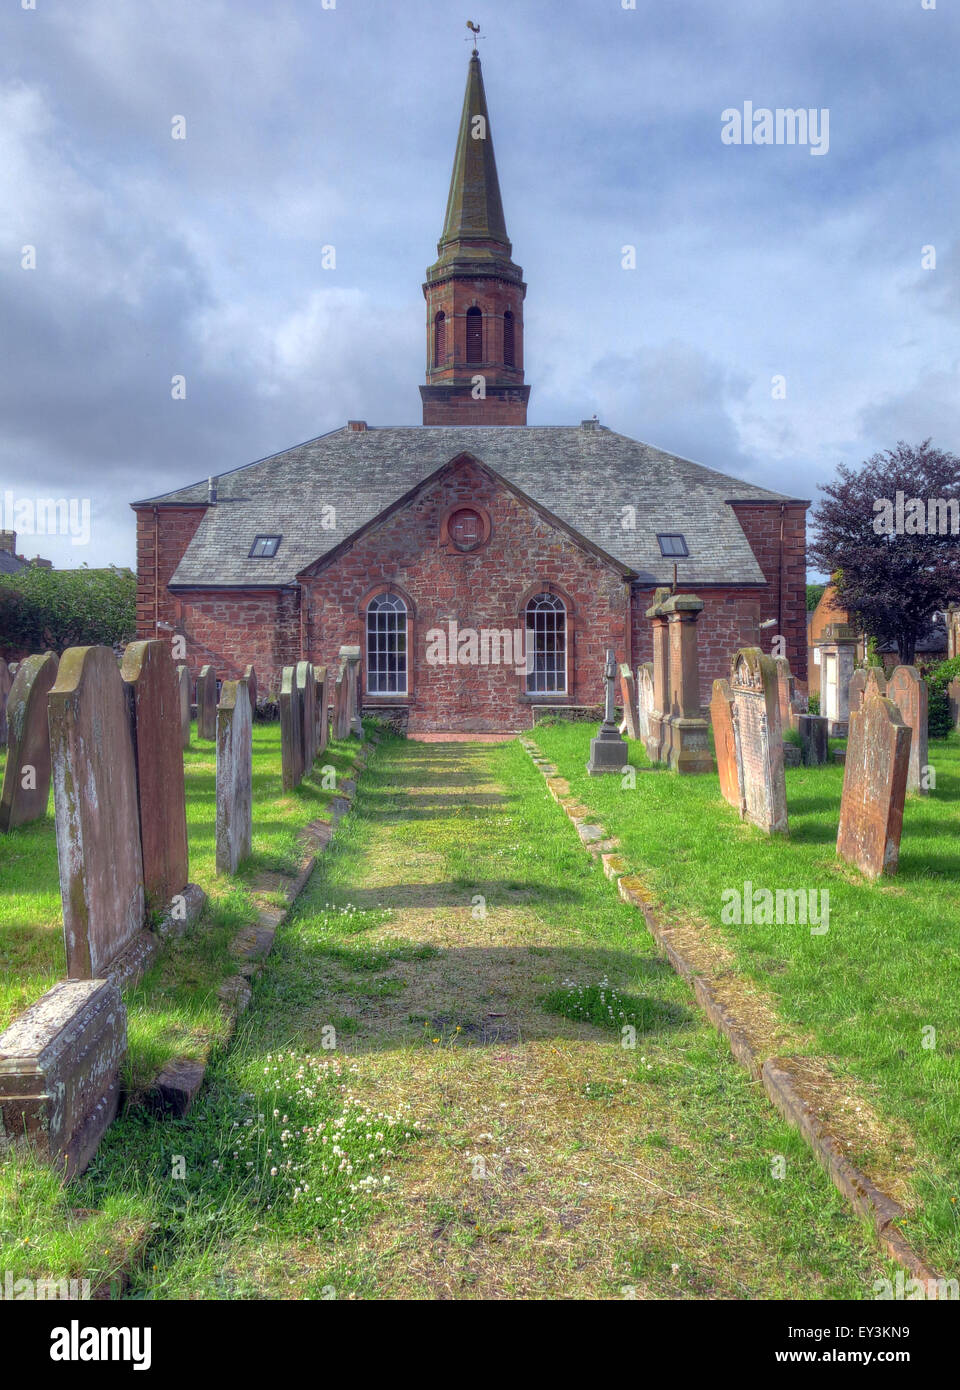 Annan,Old,Parish,Church,of,Scotland,Scottish,Churches,religion,Anglican,Anglicans,grave,graves,cross,wide,landscape,pano,landscape,summer,GoTonySmith,Buy Pictures of,Buy Images Of